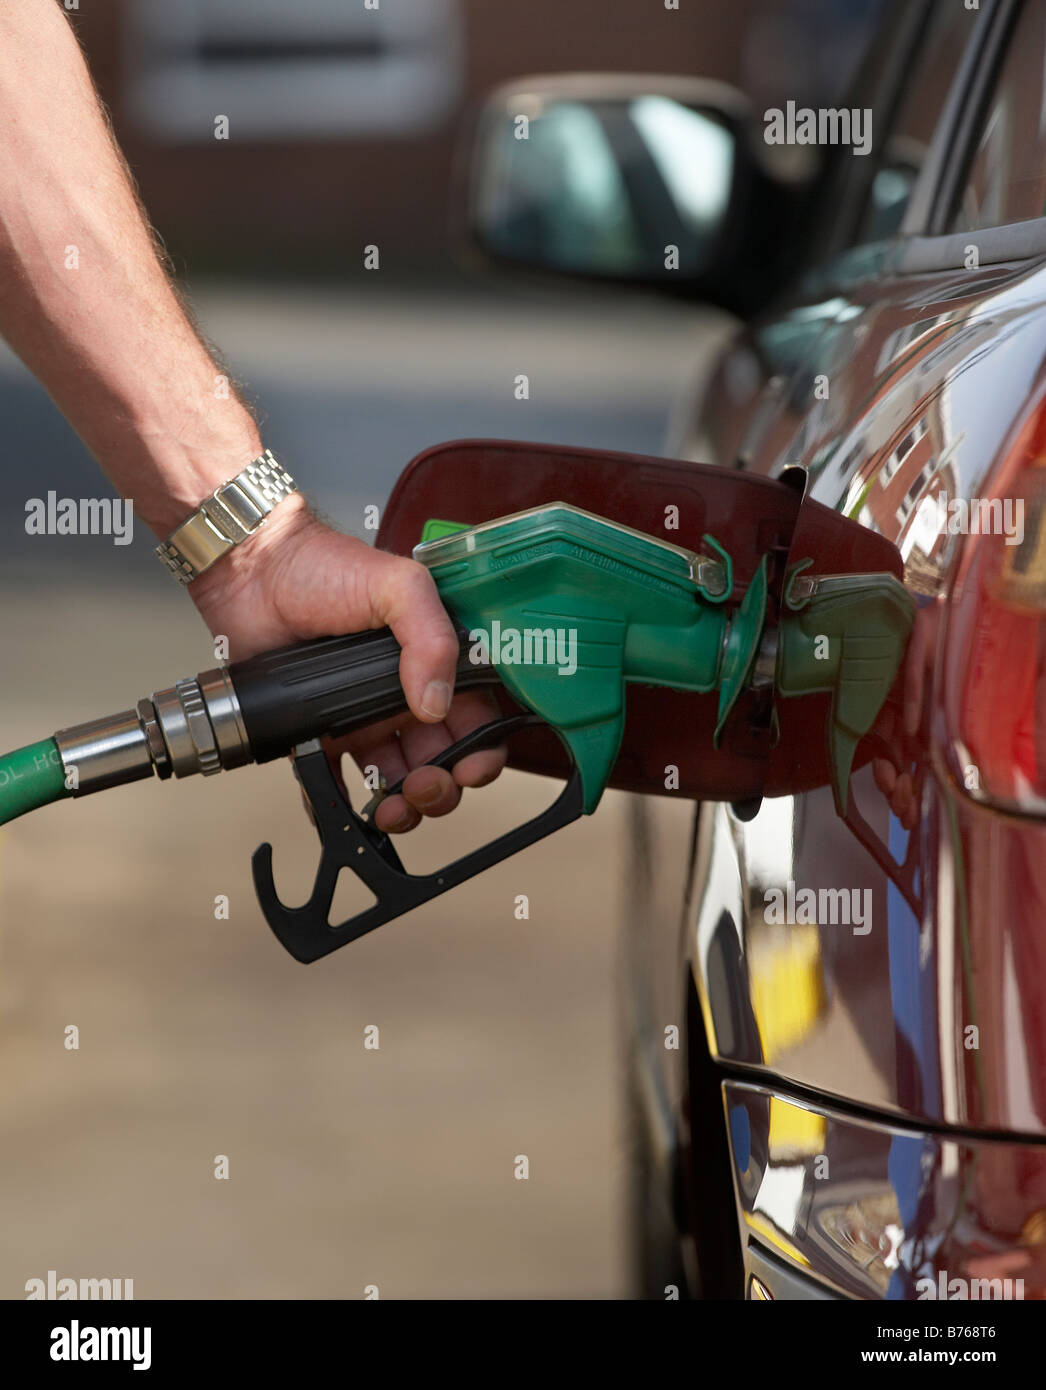 MAN FILLING CAR AUTOMOBILE GAS GASOLINE FUEL PETROL DIESEL TANK - Stock Image